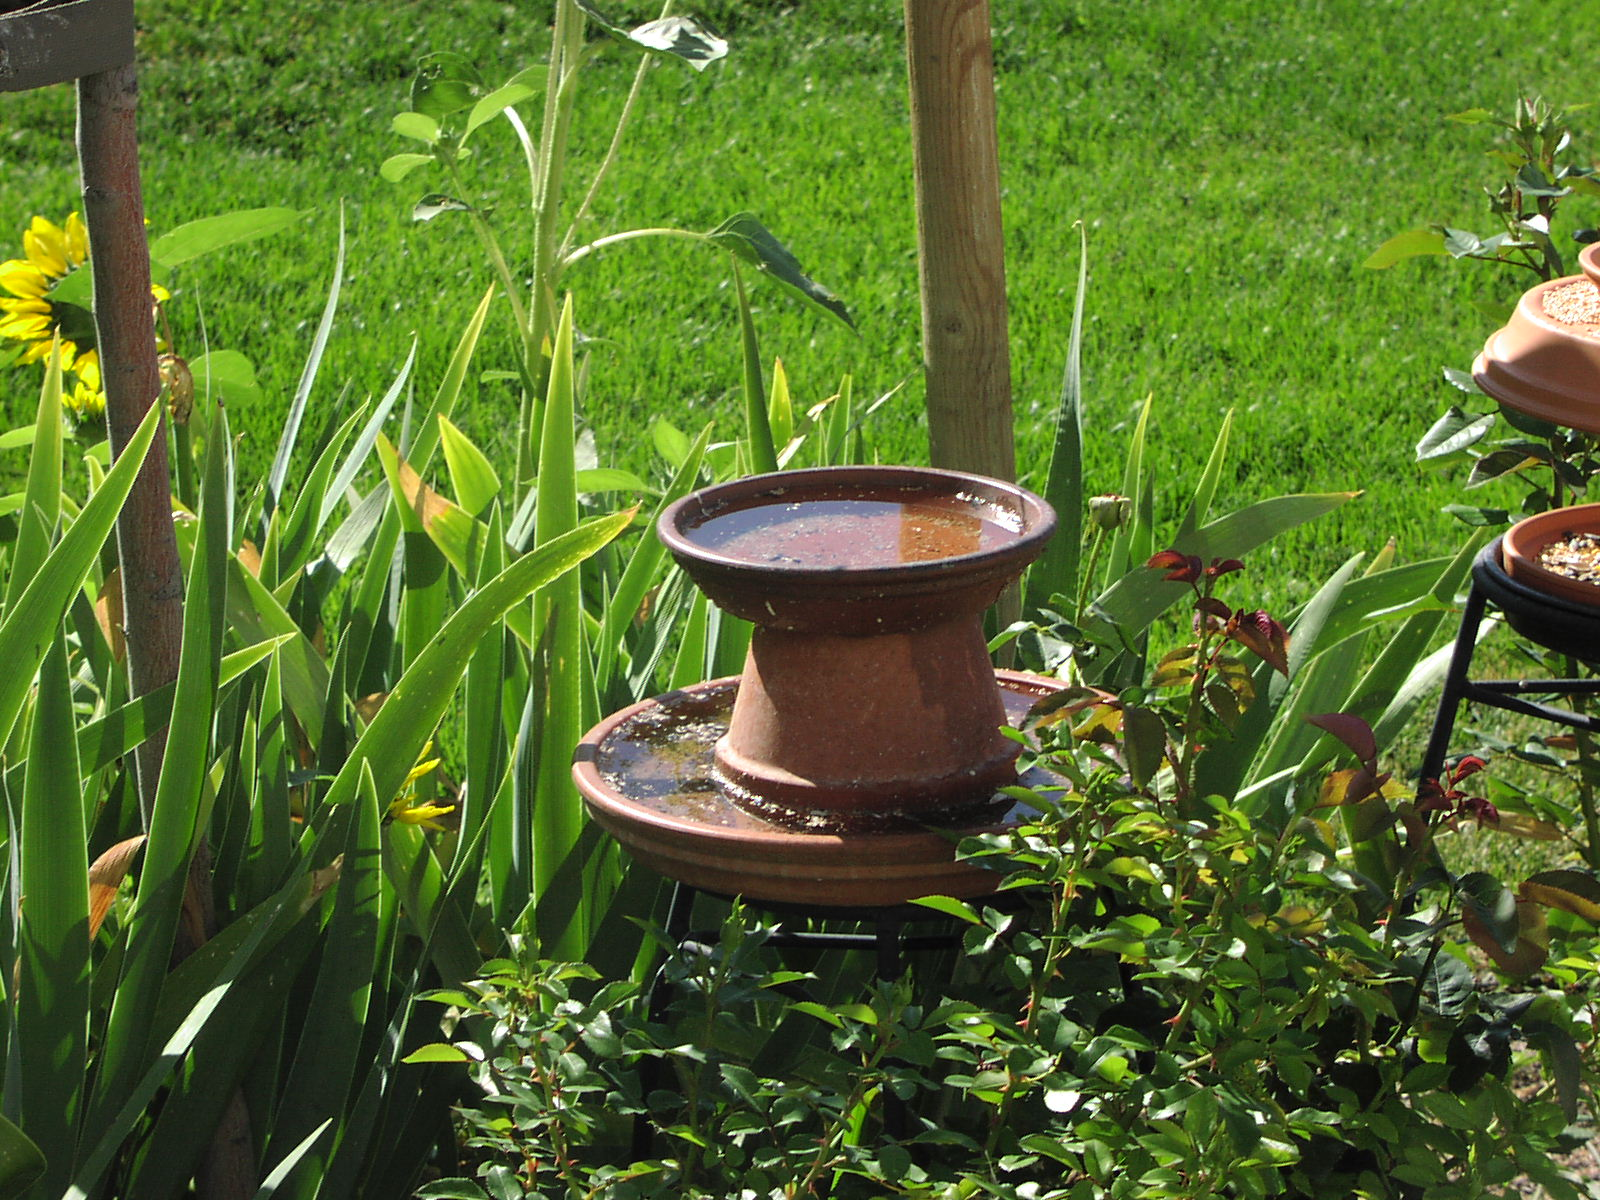 Bird bath in front yard in 2005-06